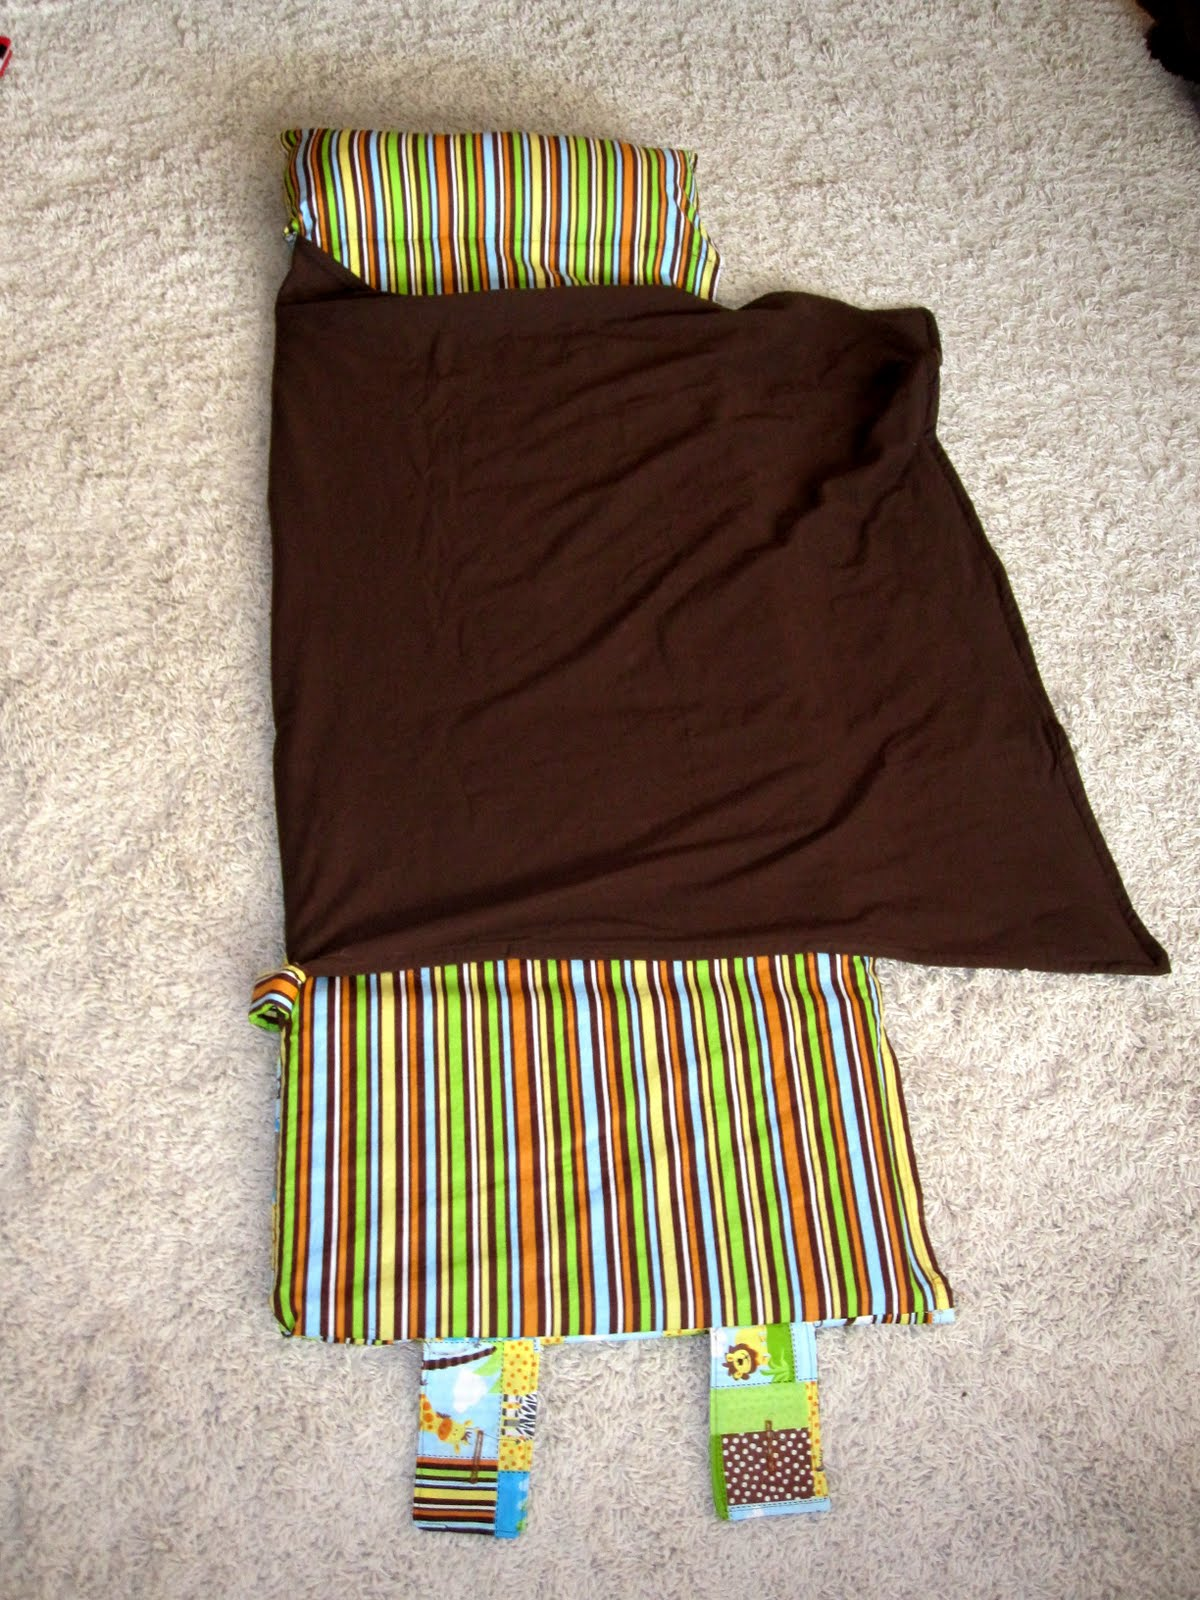 Nap mat with attached blanket and pillow.  Great tutorial PDF.